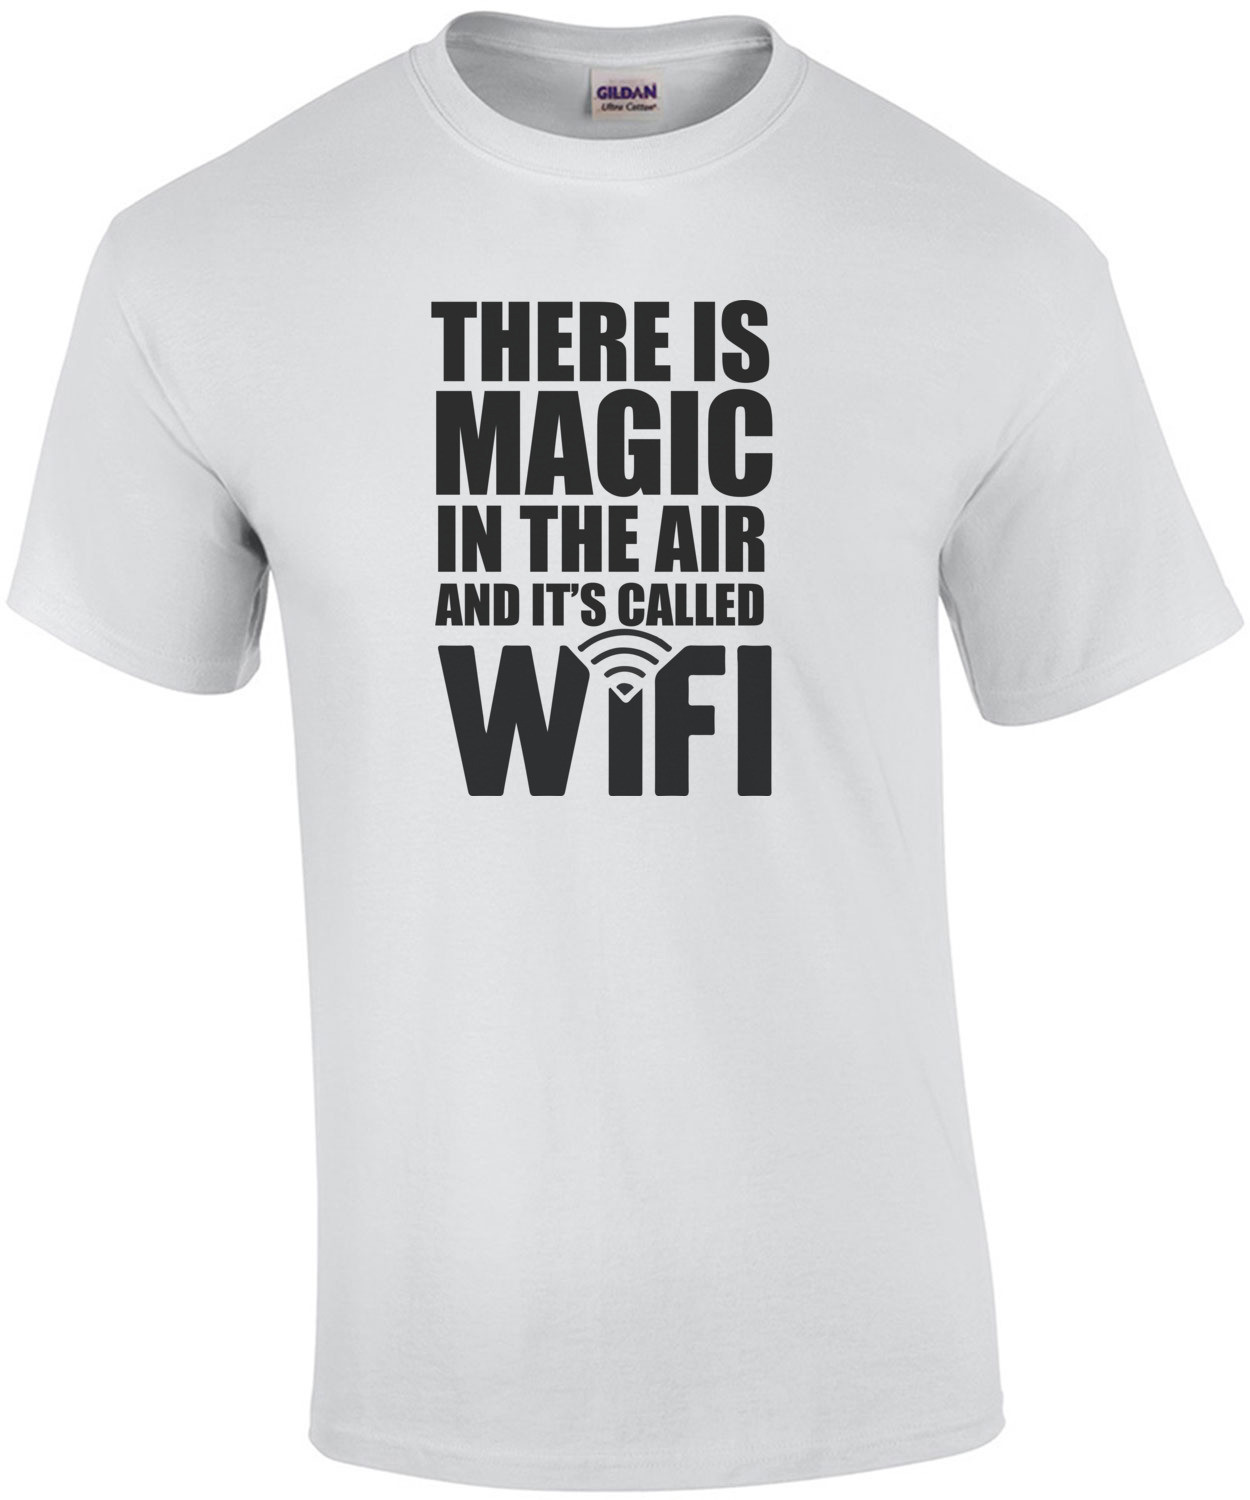 There is magic in the air and it's called WiFi.